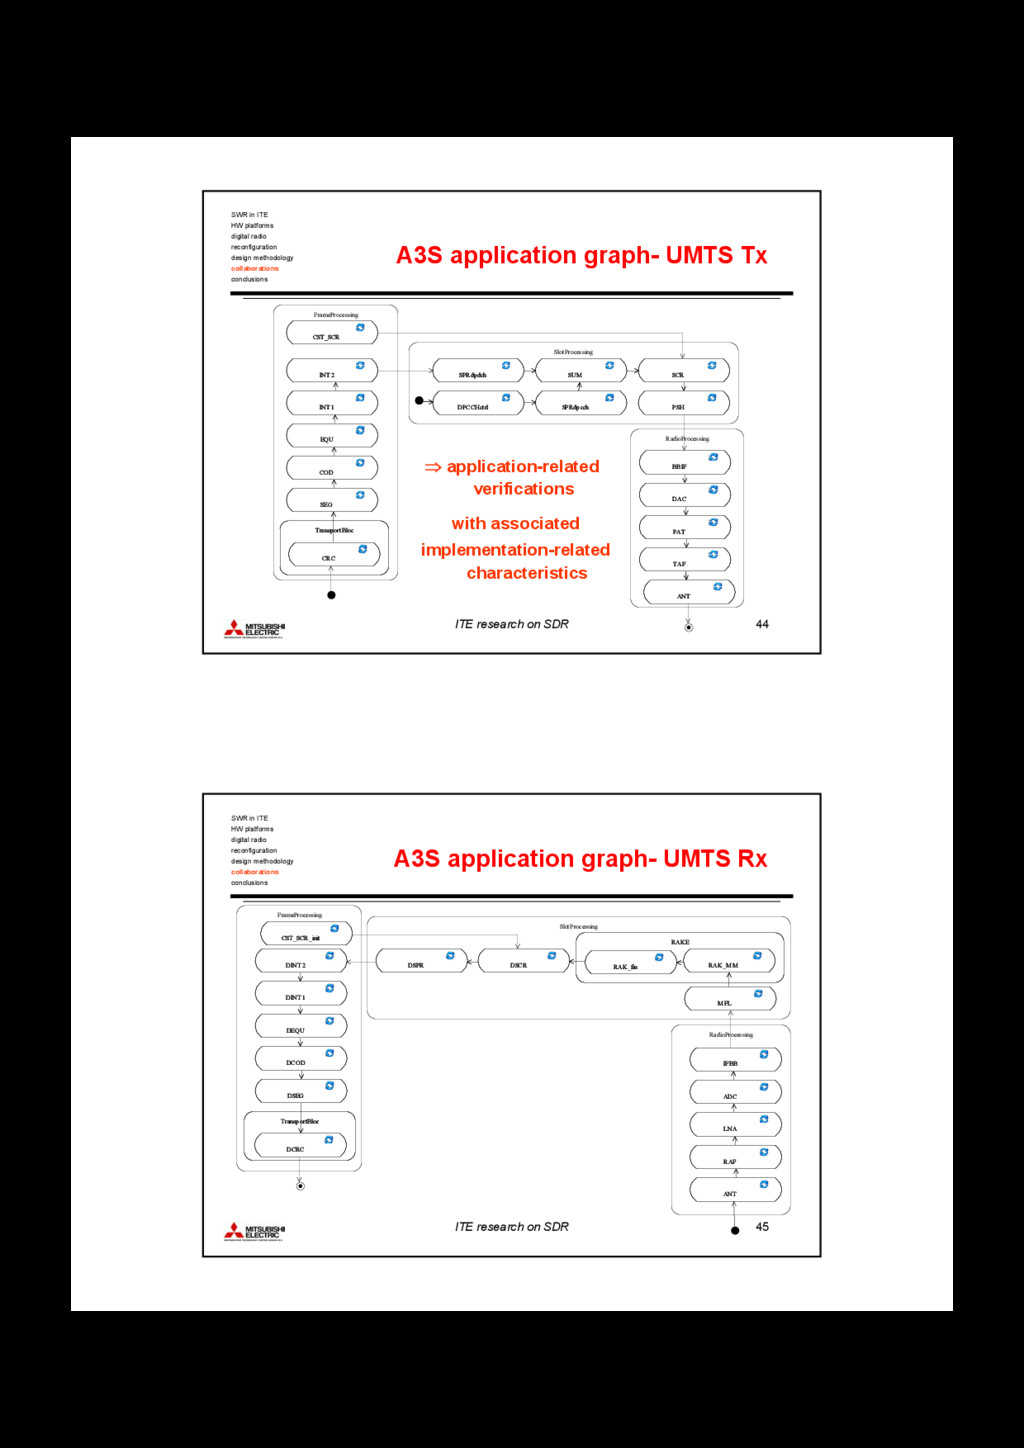 ITE research on SDR 44 A3S application graph- U...